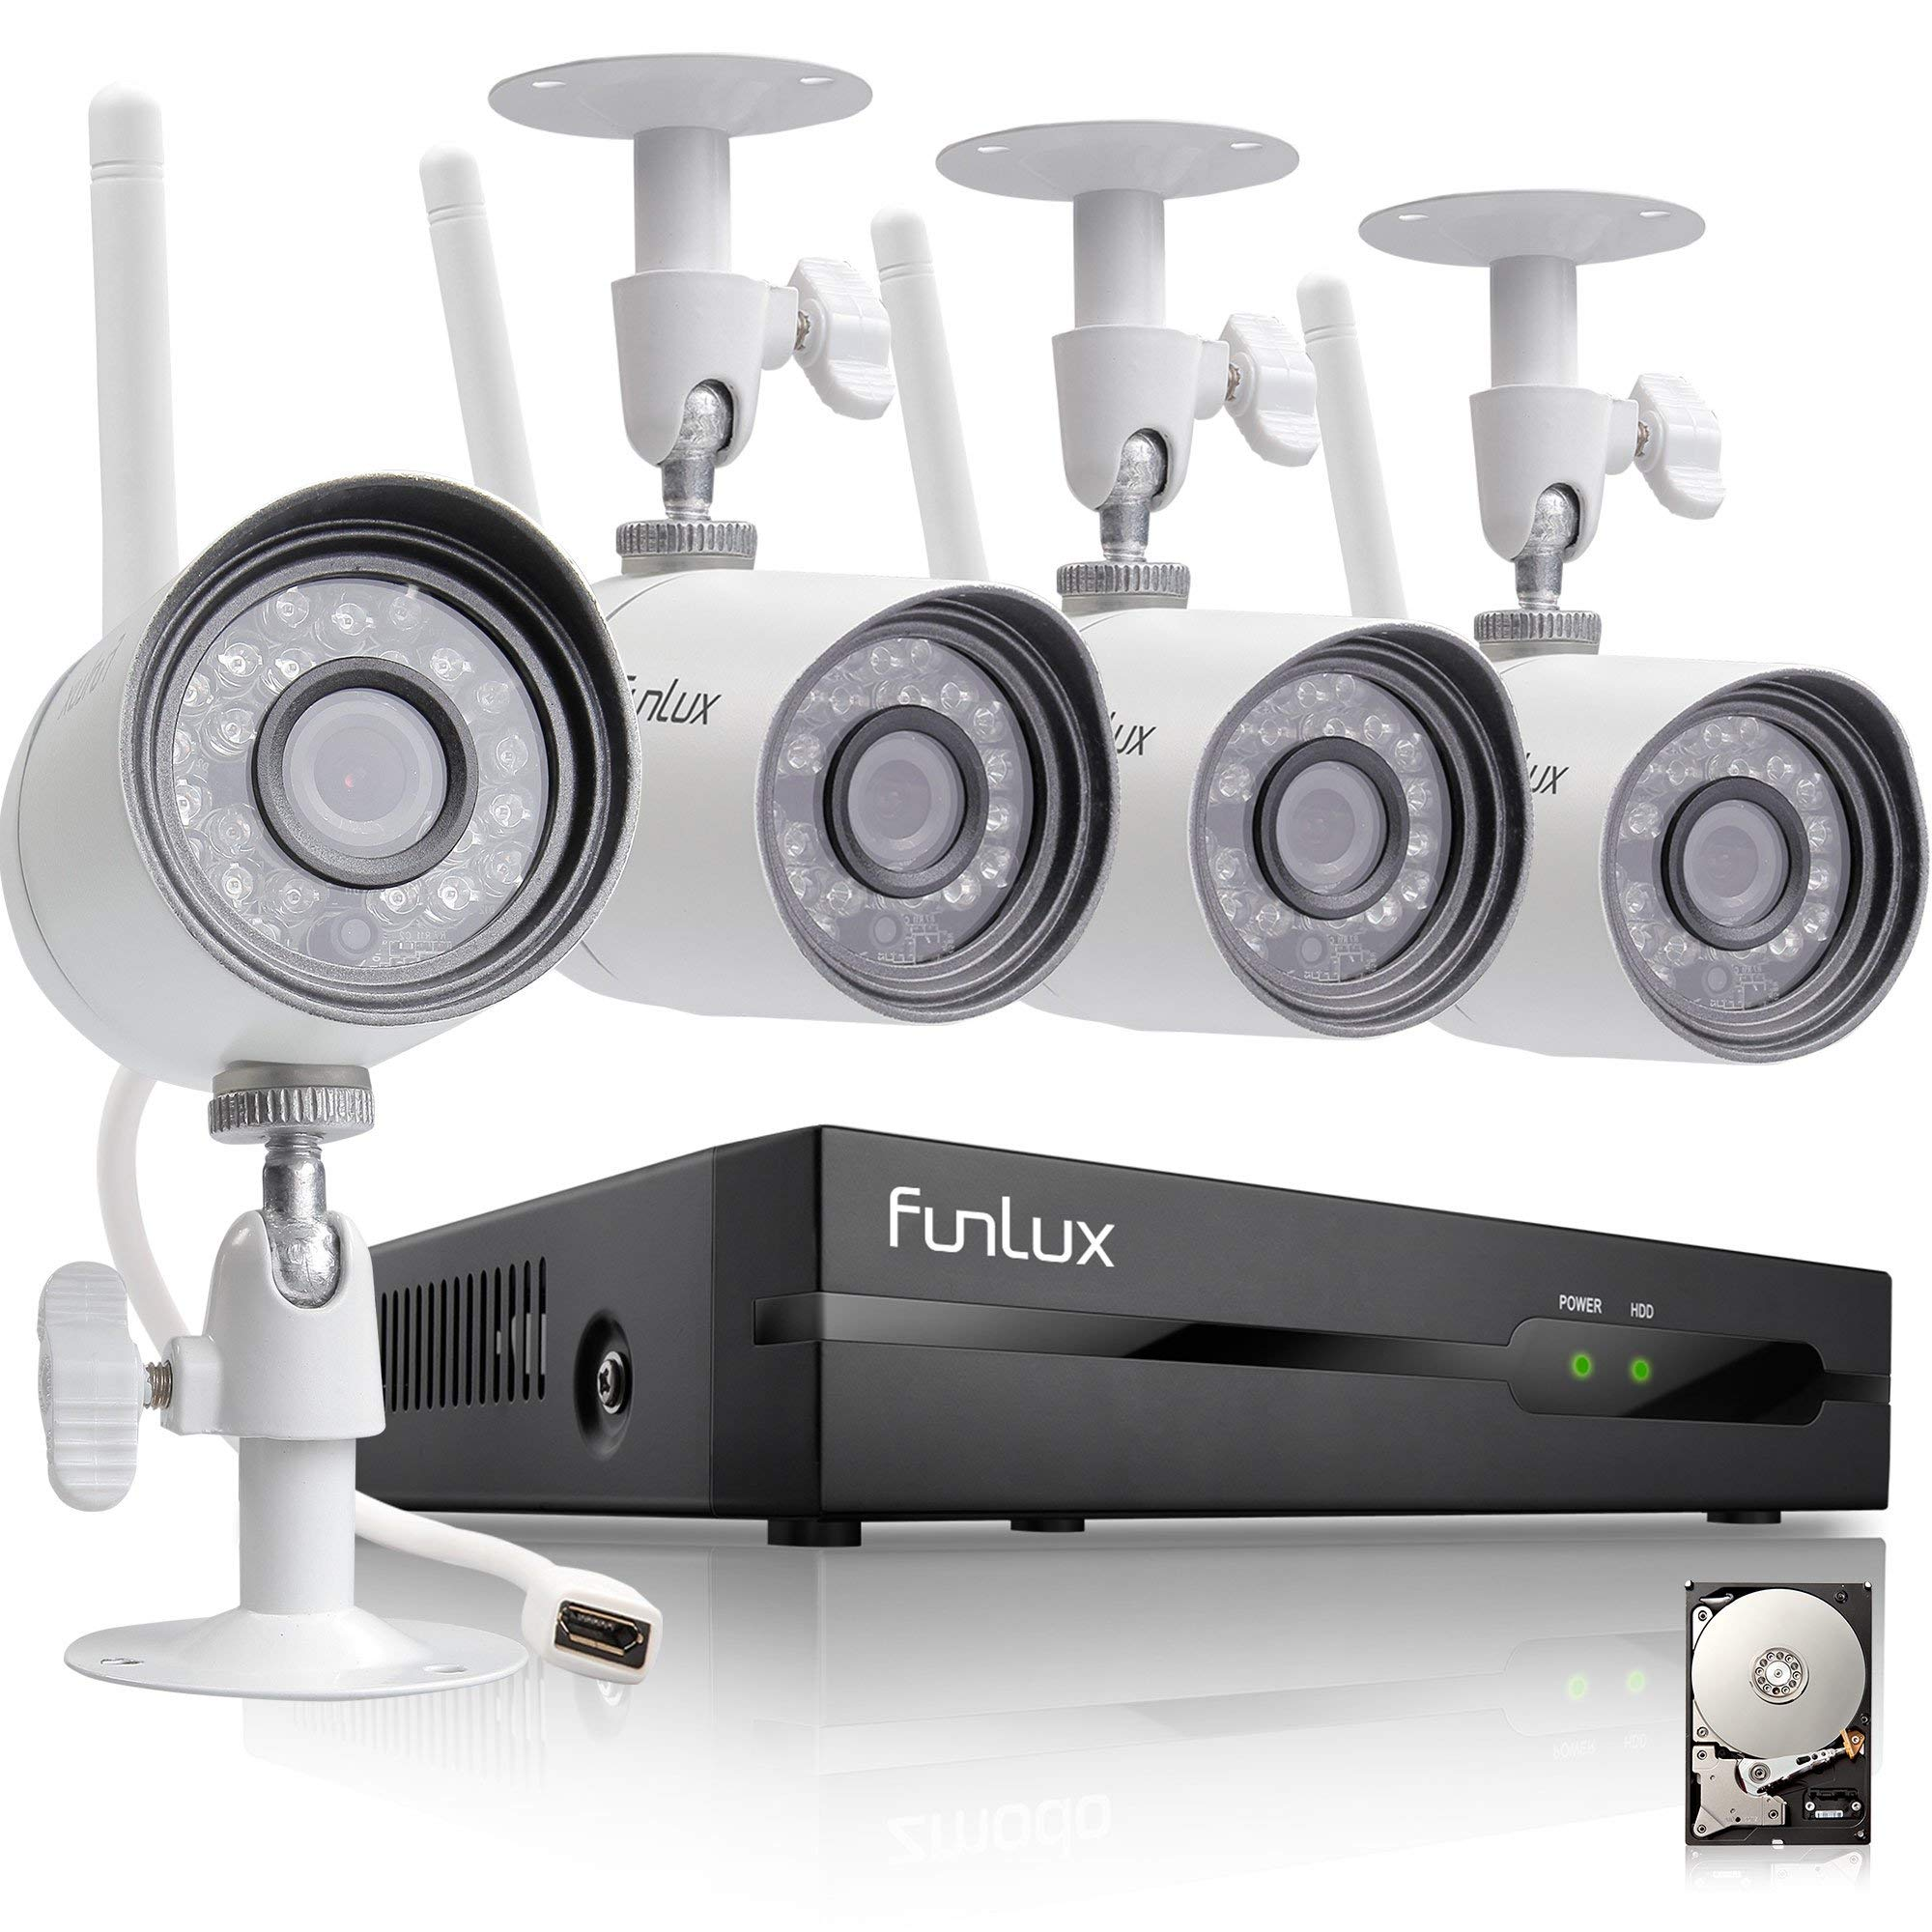 Funlux 4 Channel 1080p HDMI NVR 4 720p HD Indoor Outdoor Wireless Home Security Camera System 500GB Hard Drive (Renewed) by Funlux